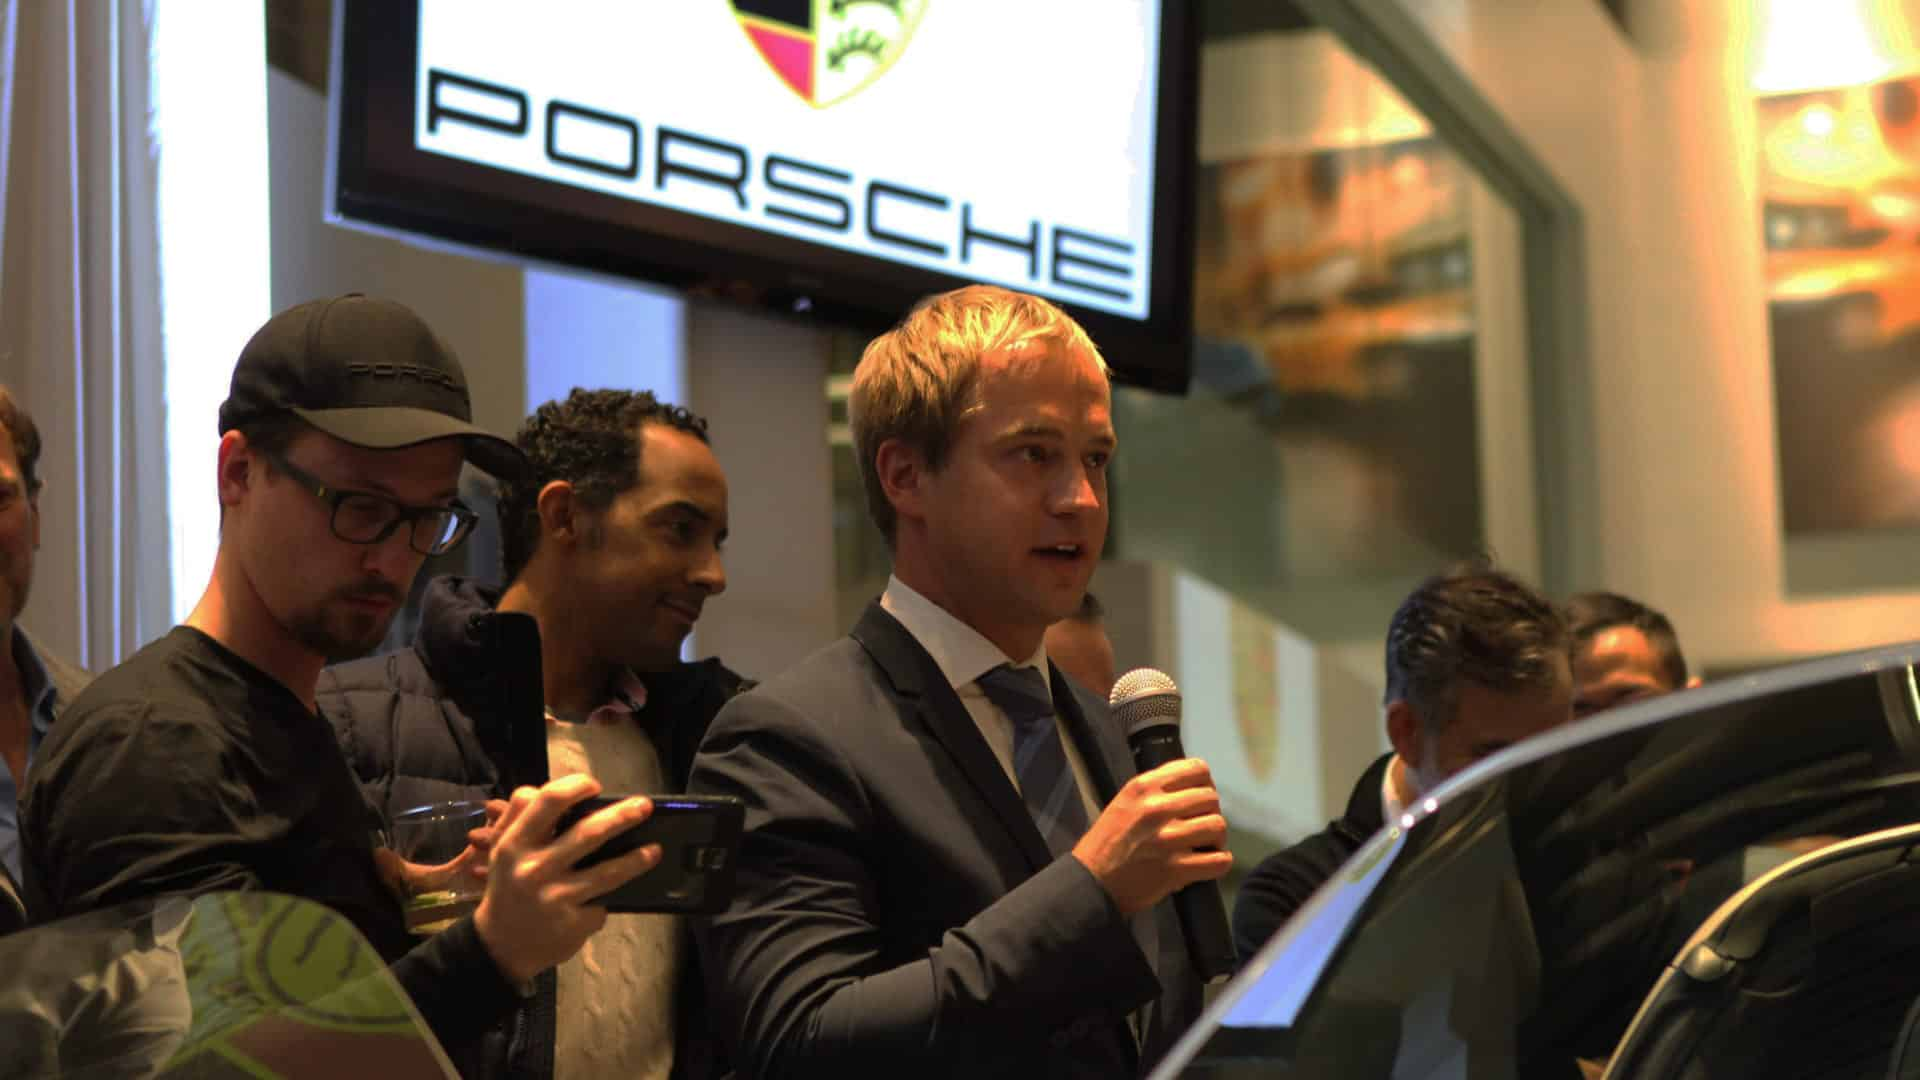 Porsche 911 Targa 4s Exclusive Design Edition Launch Event ~ NYC